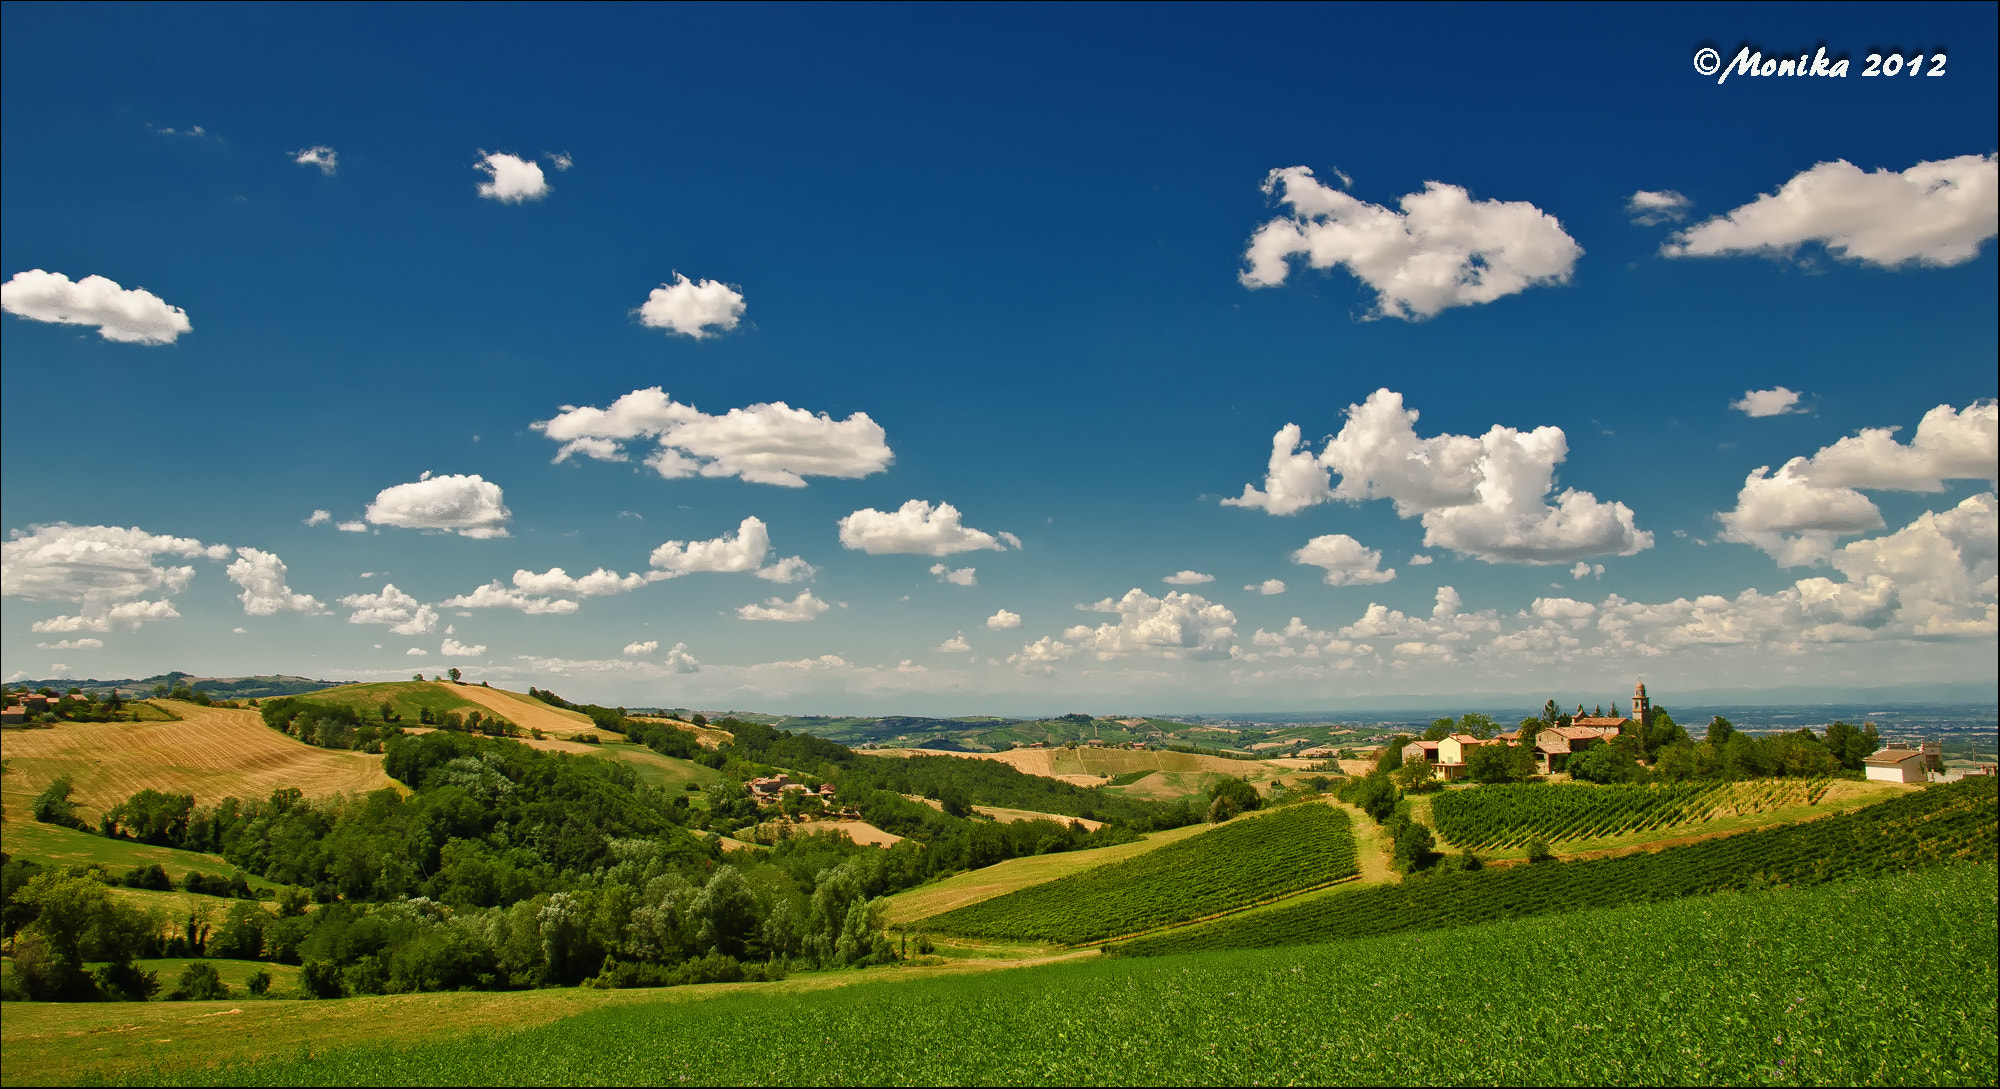 Photograph LE COLLINE DI VIDIANO by Monika Fotografie on 500px